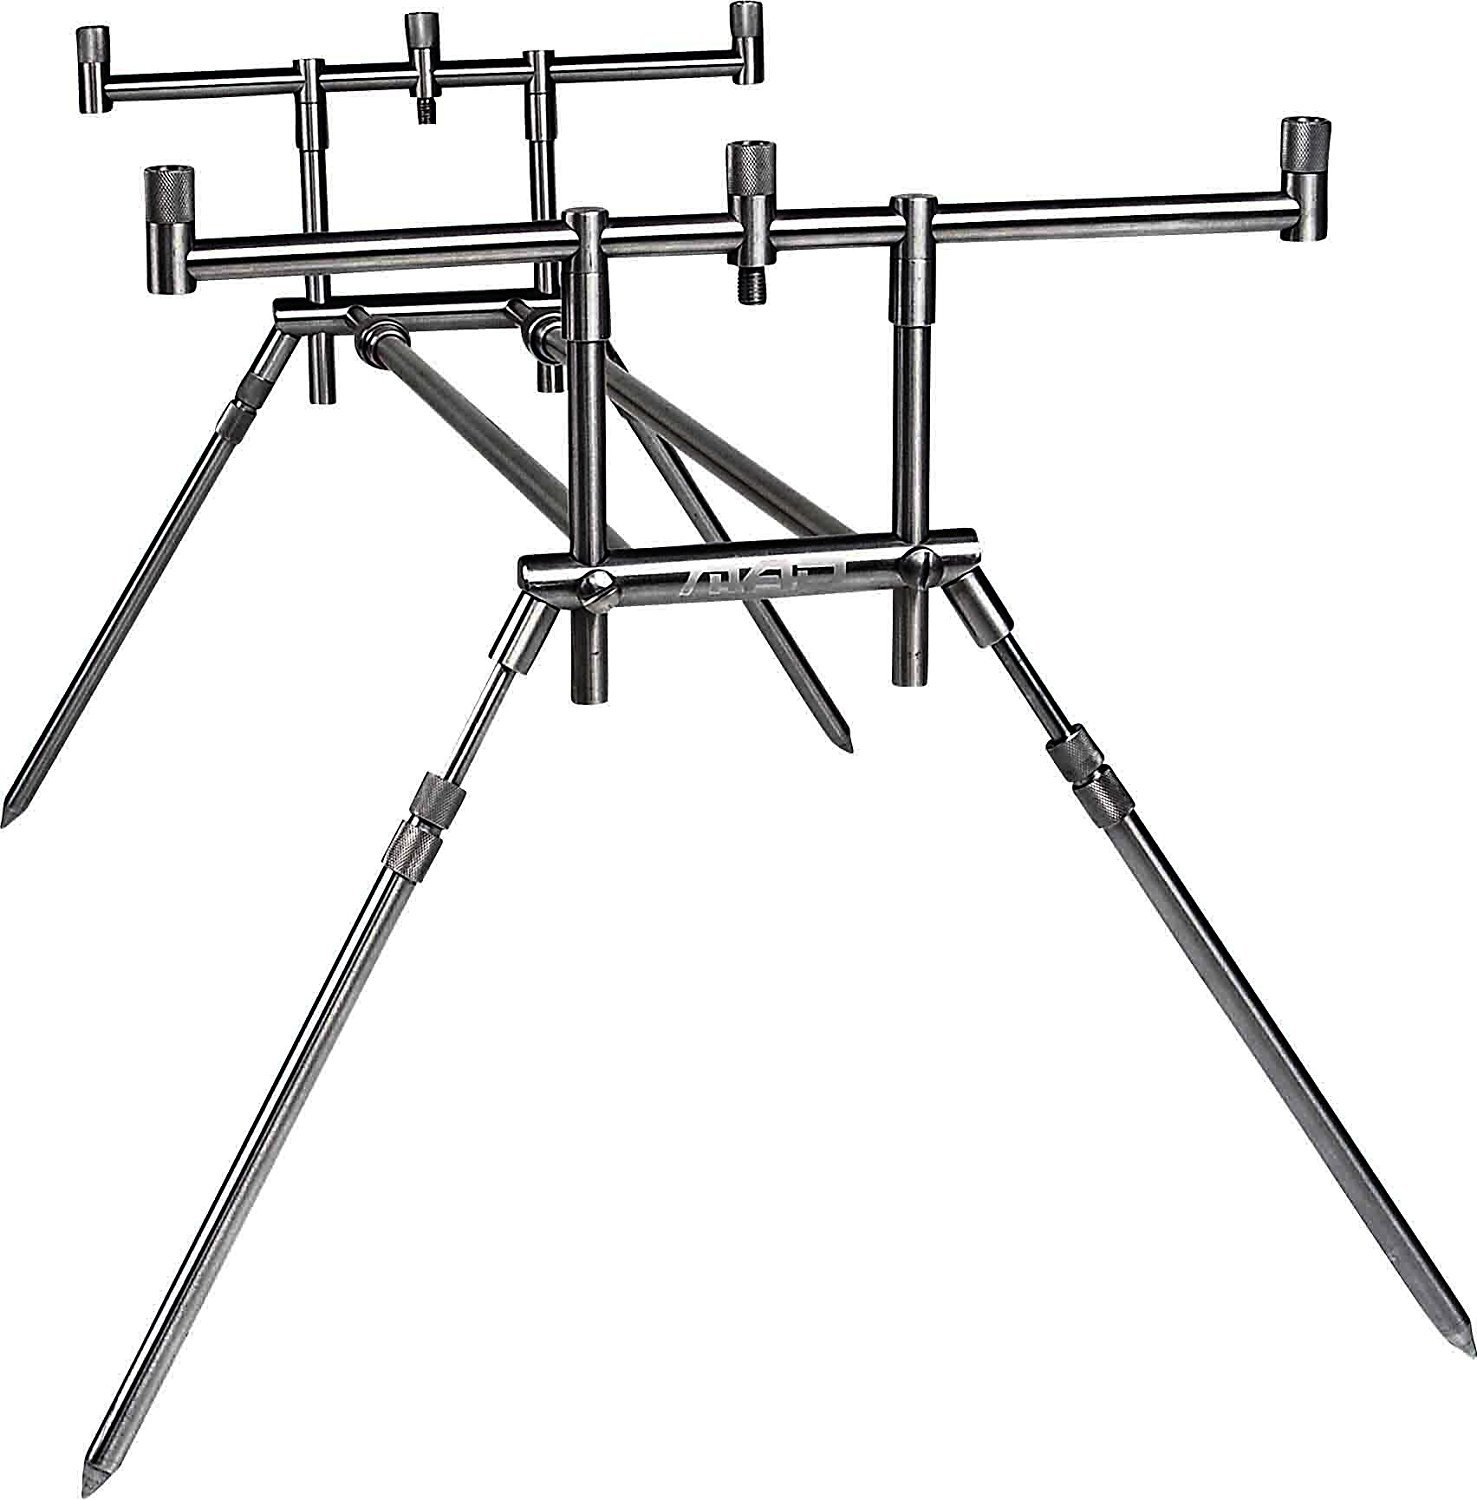 DAM MAD Compact Stainless Steel Rod Pod Rack For 3 Fishing Rods, incl 3 Rodrests (2913103) and 3 Buttcaps (11 07028), 2900022 by MAD-Rod-Pods